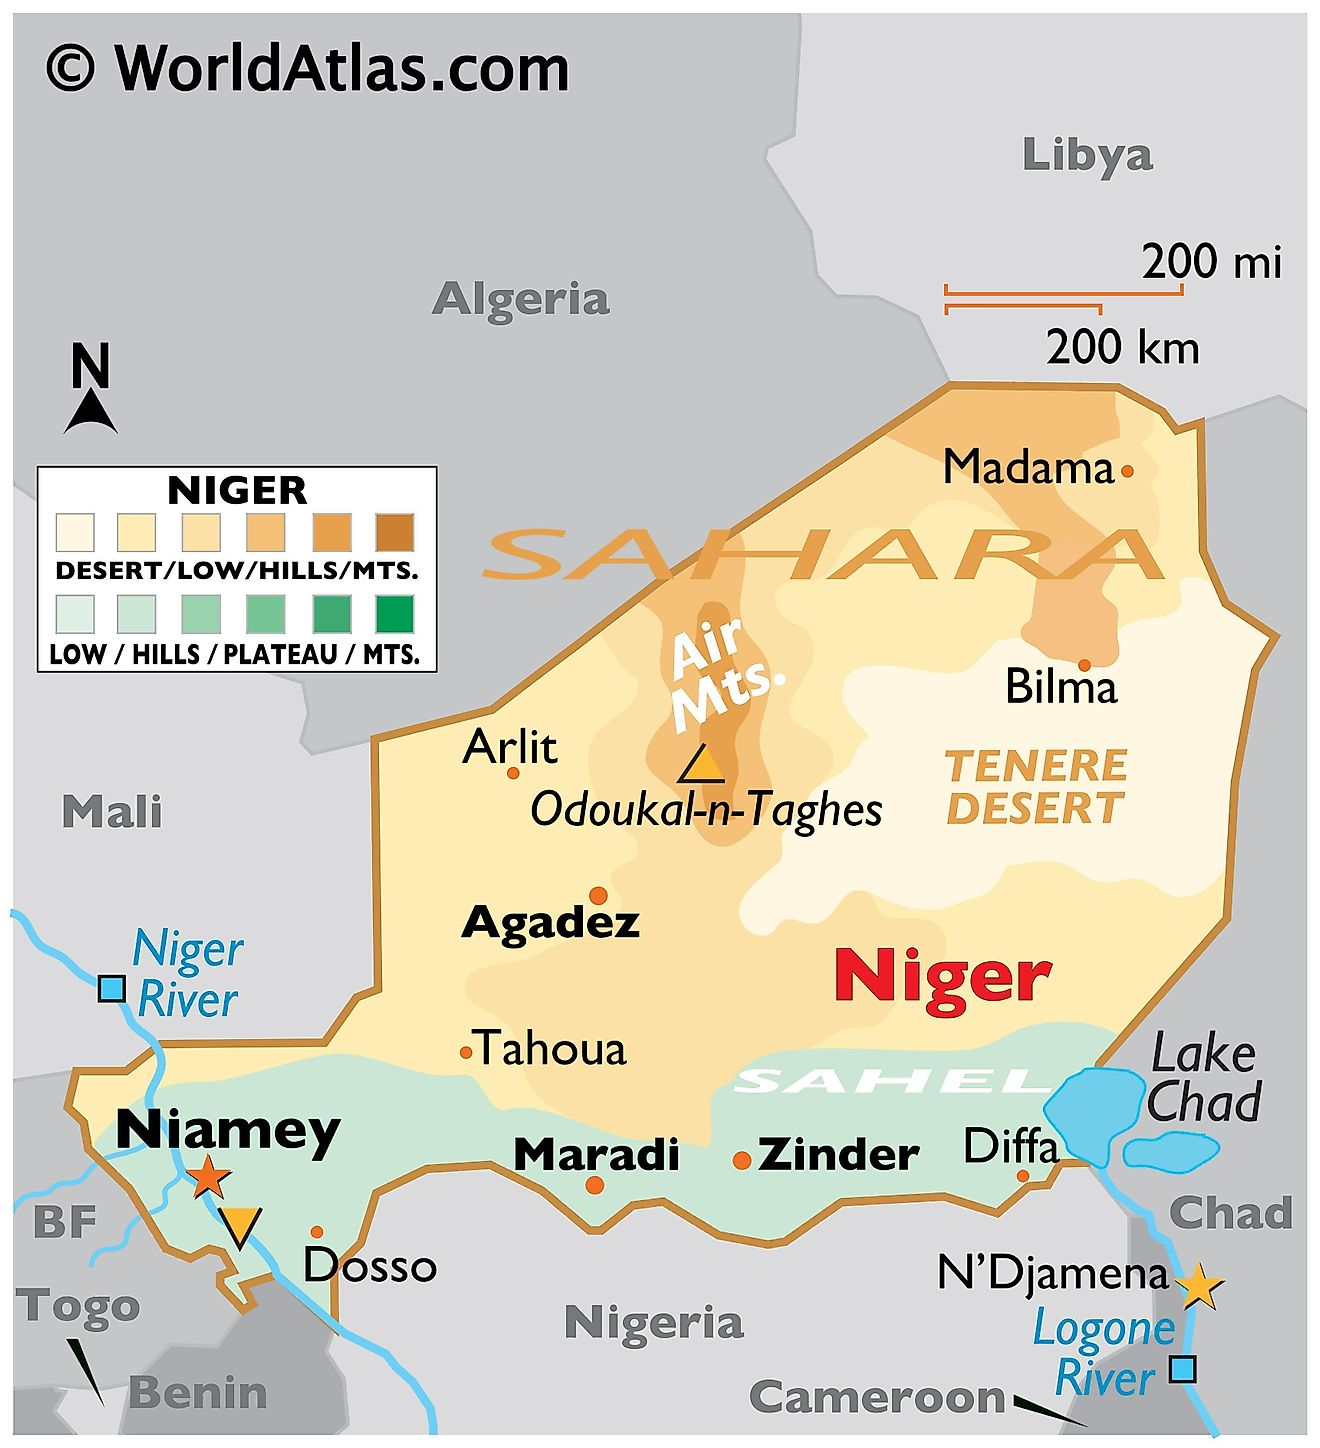 Physical Map of Niger with state boundaries. It shows the physical features of Niger with relief, major mountain peaks, rivers, lakes, major cities, etc.